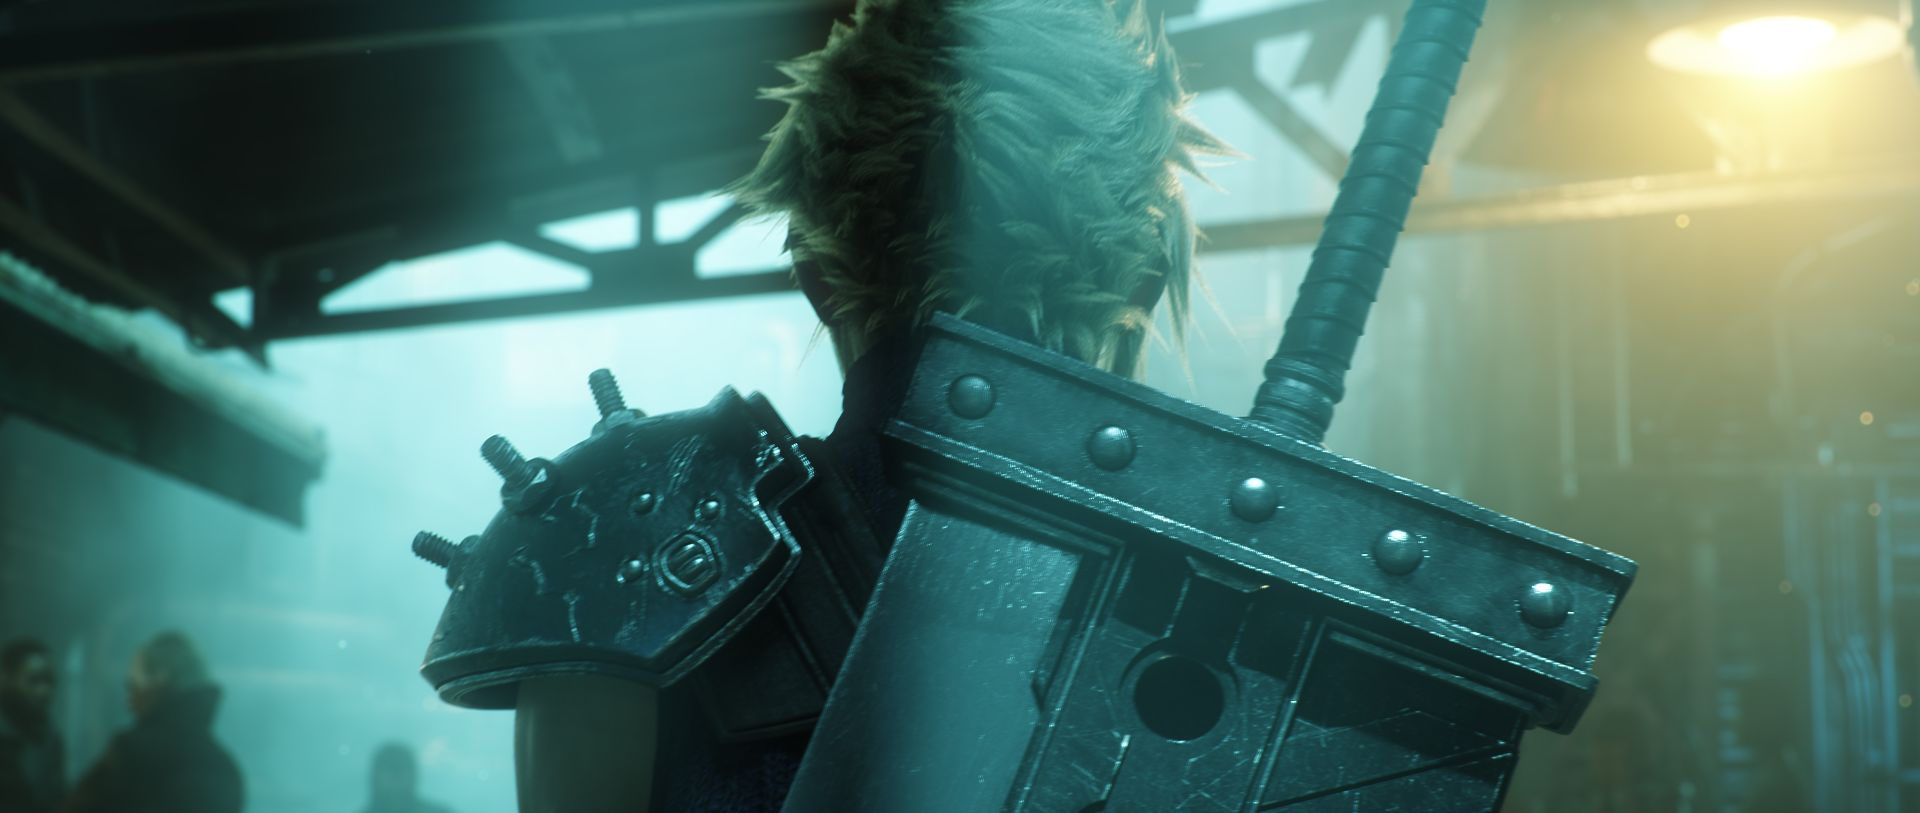 Final Fantasy VII Remake -  how will it handle combat?